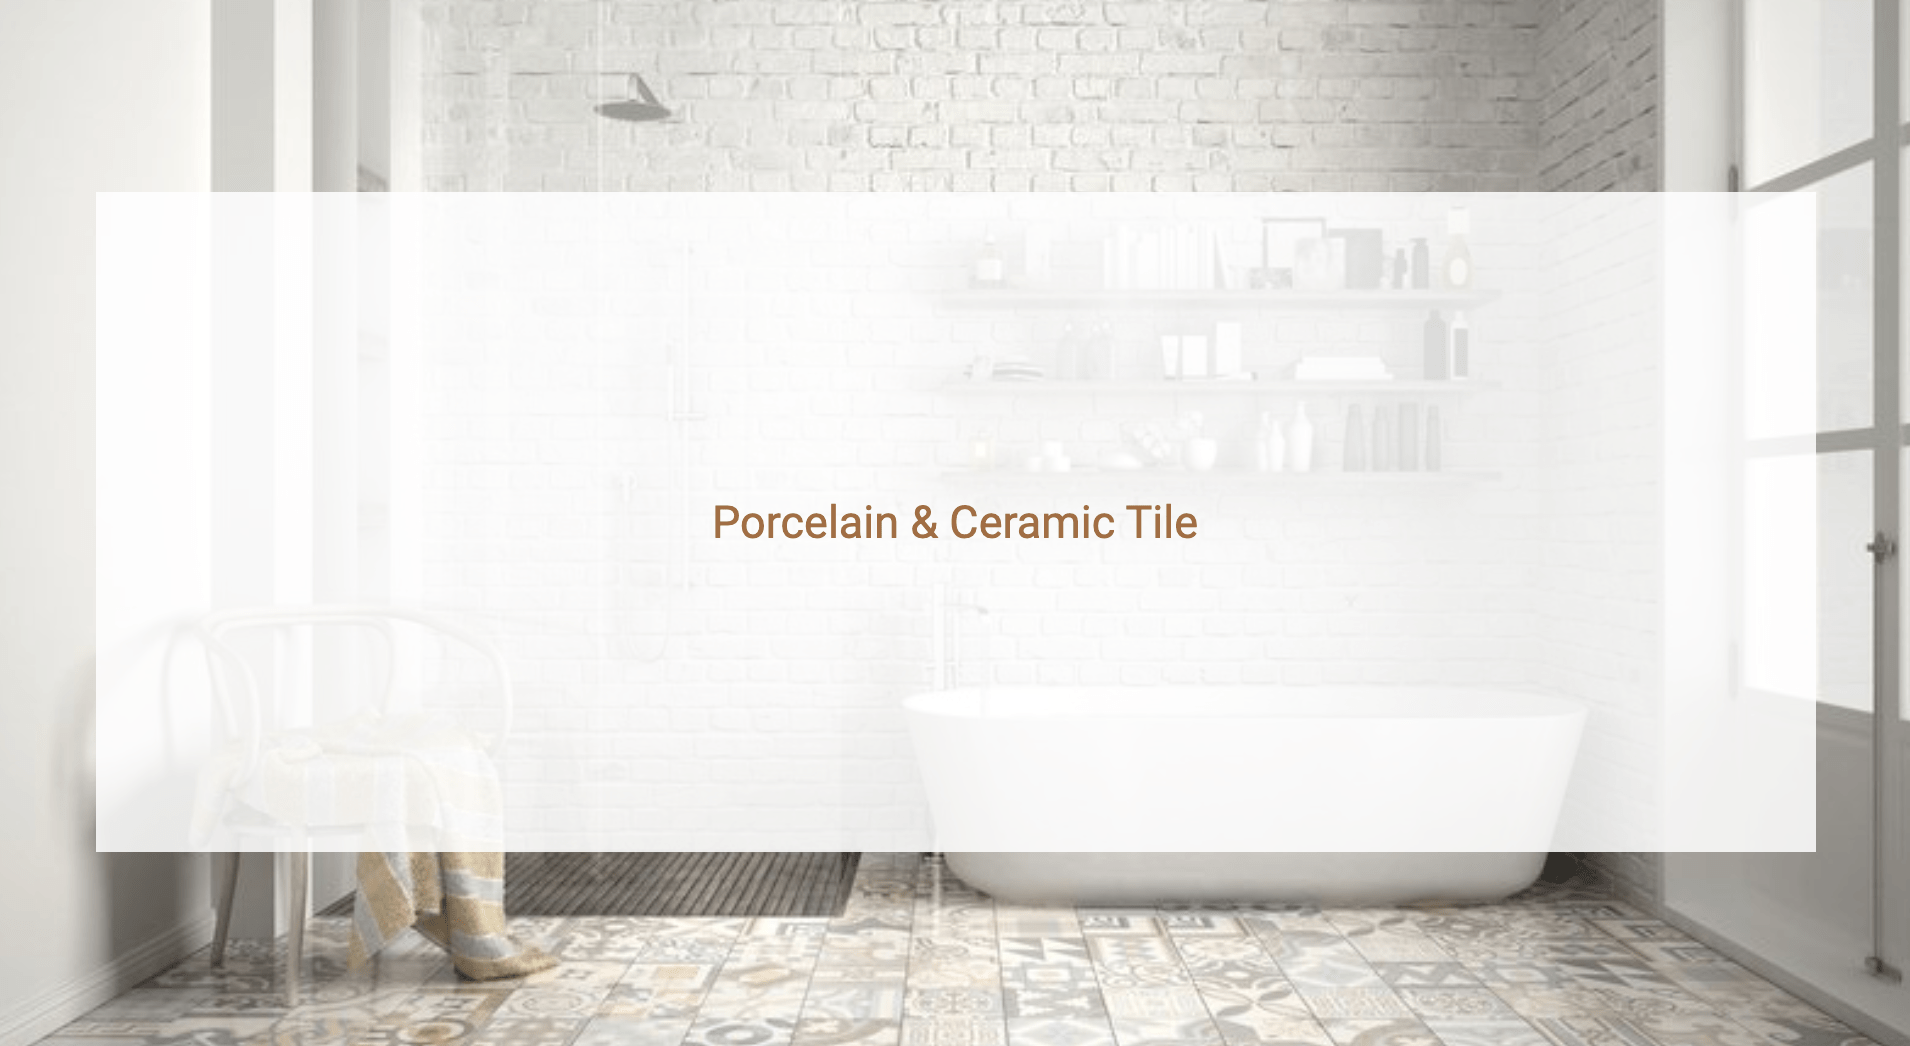 Porcelain & Ceramic Tile in brown text with a bathroom in the background featuring a patterned tile floor